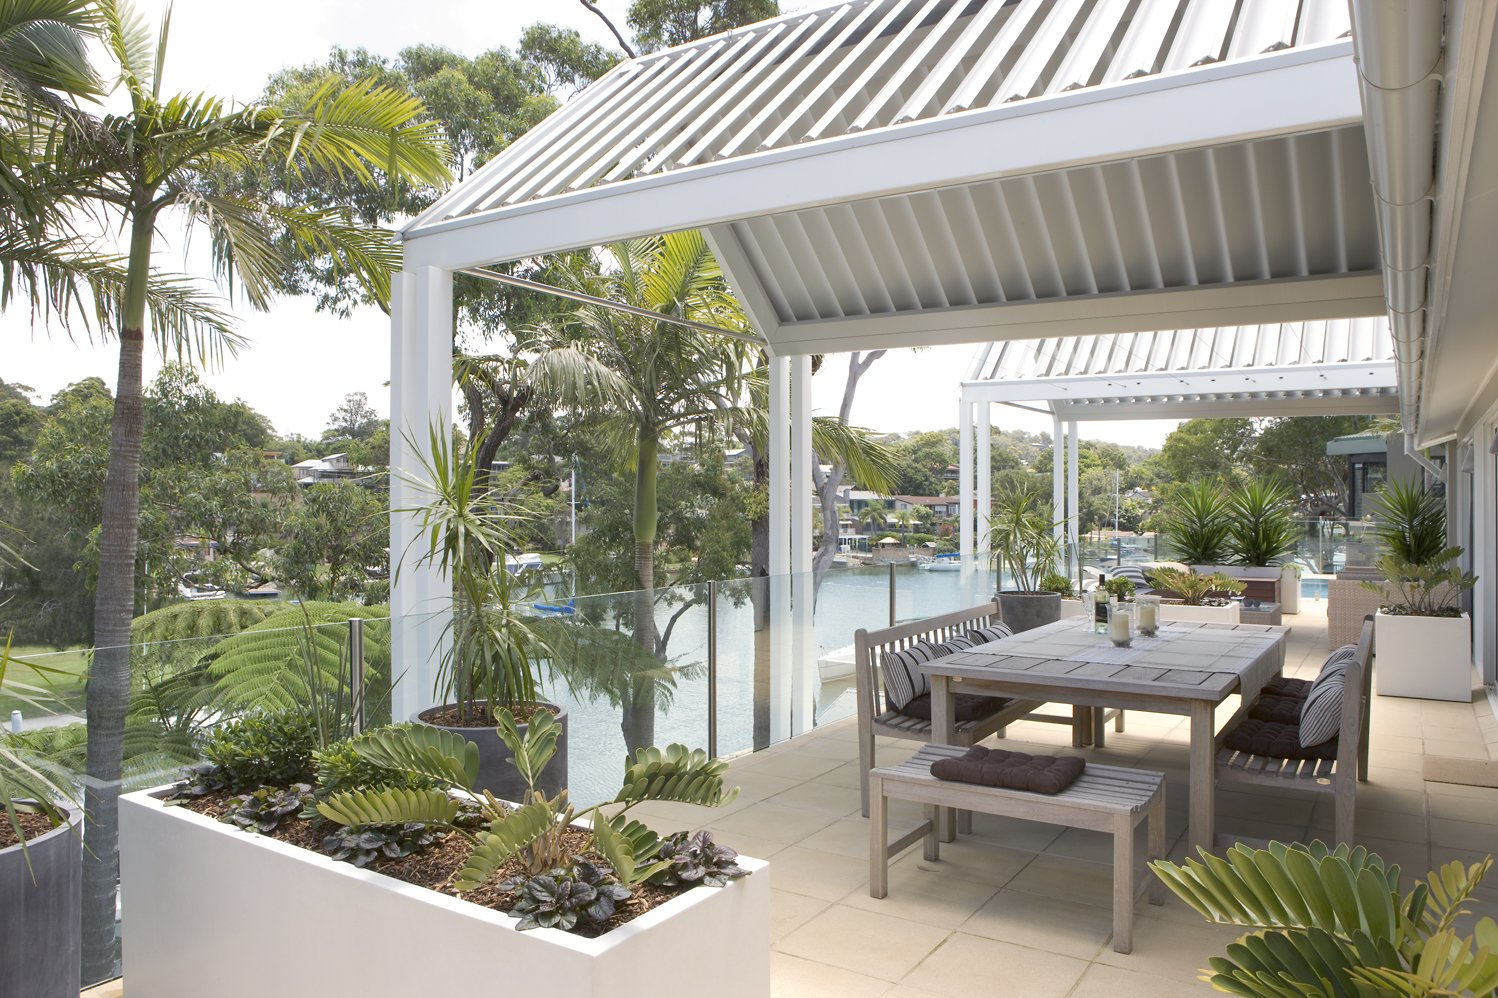 White pergola area with dining table overlooking the water